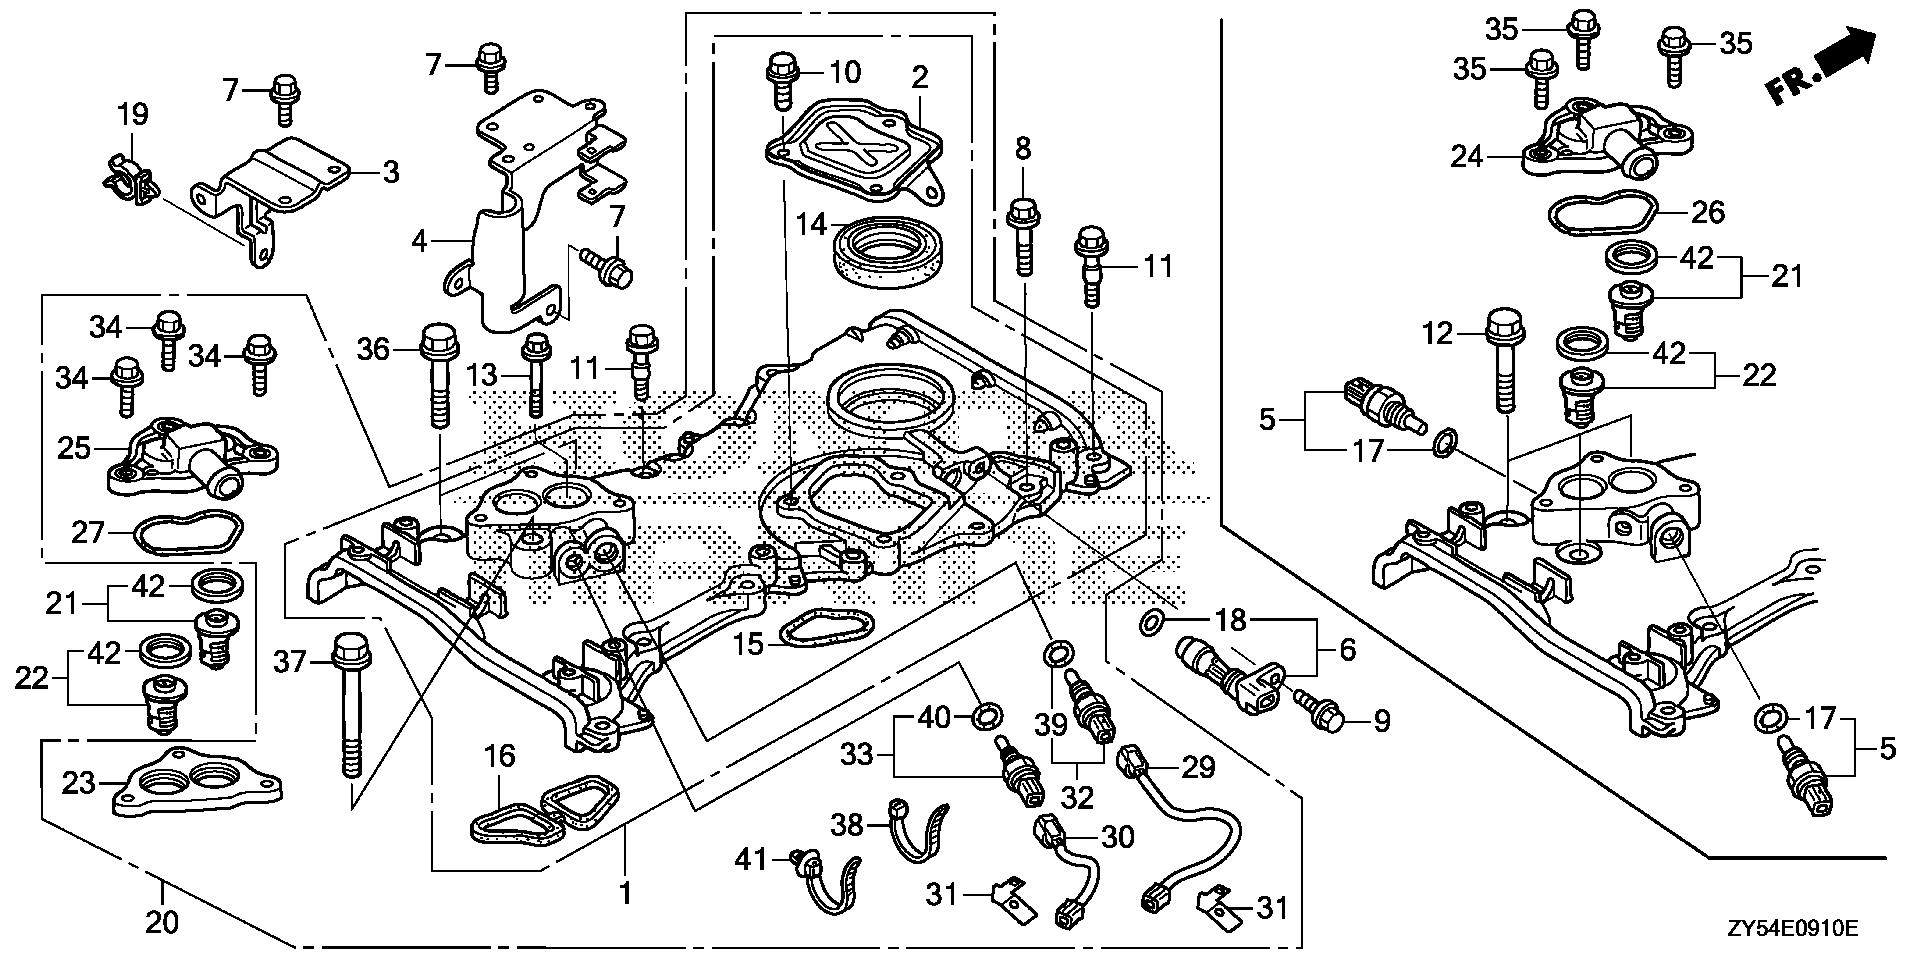 Johnson Outboard Wiring Diagram 1994 90 Hp Diagram Auto